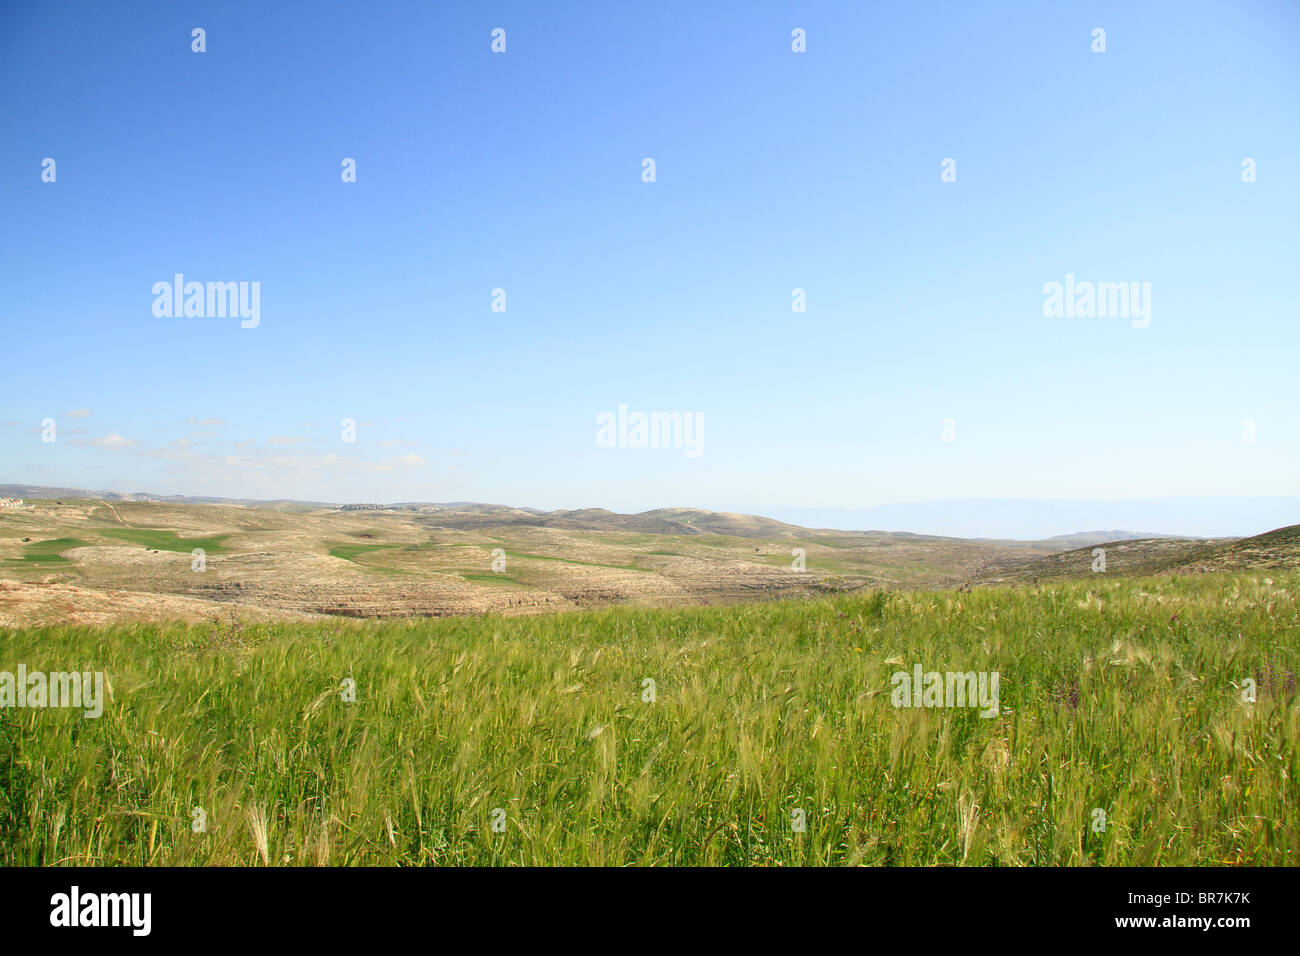 Landscape nearTell el-Ful, site of biblical Gibeah - Stock Image